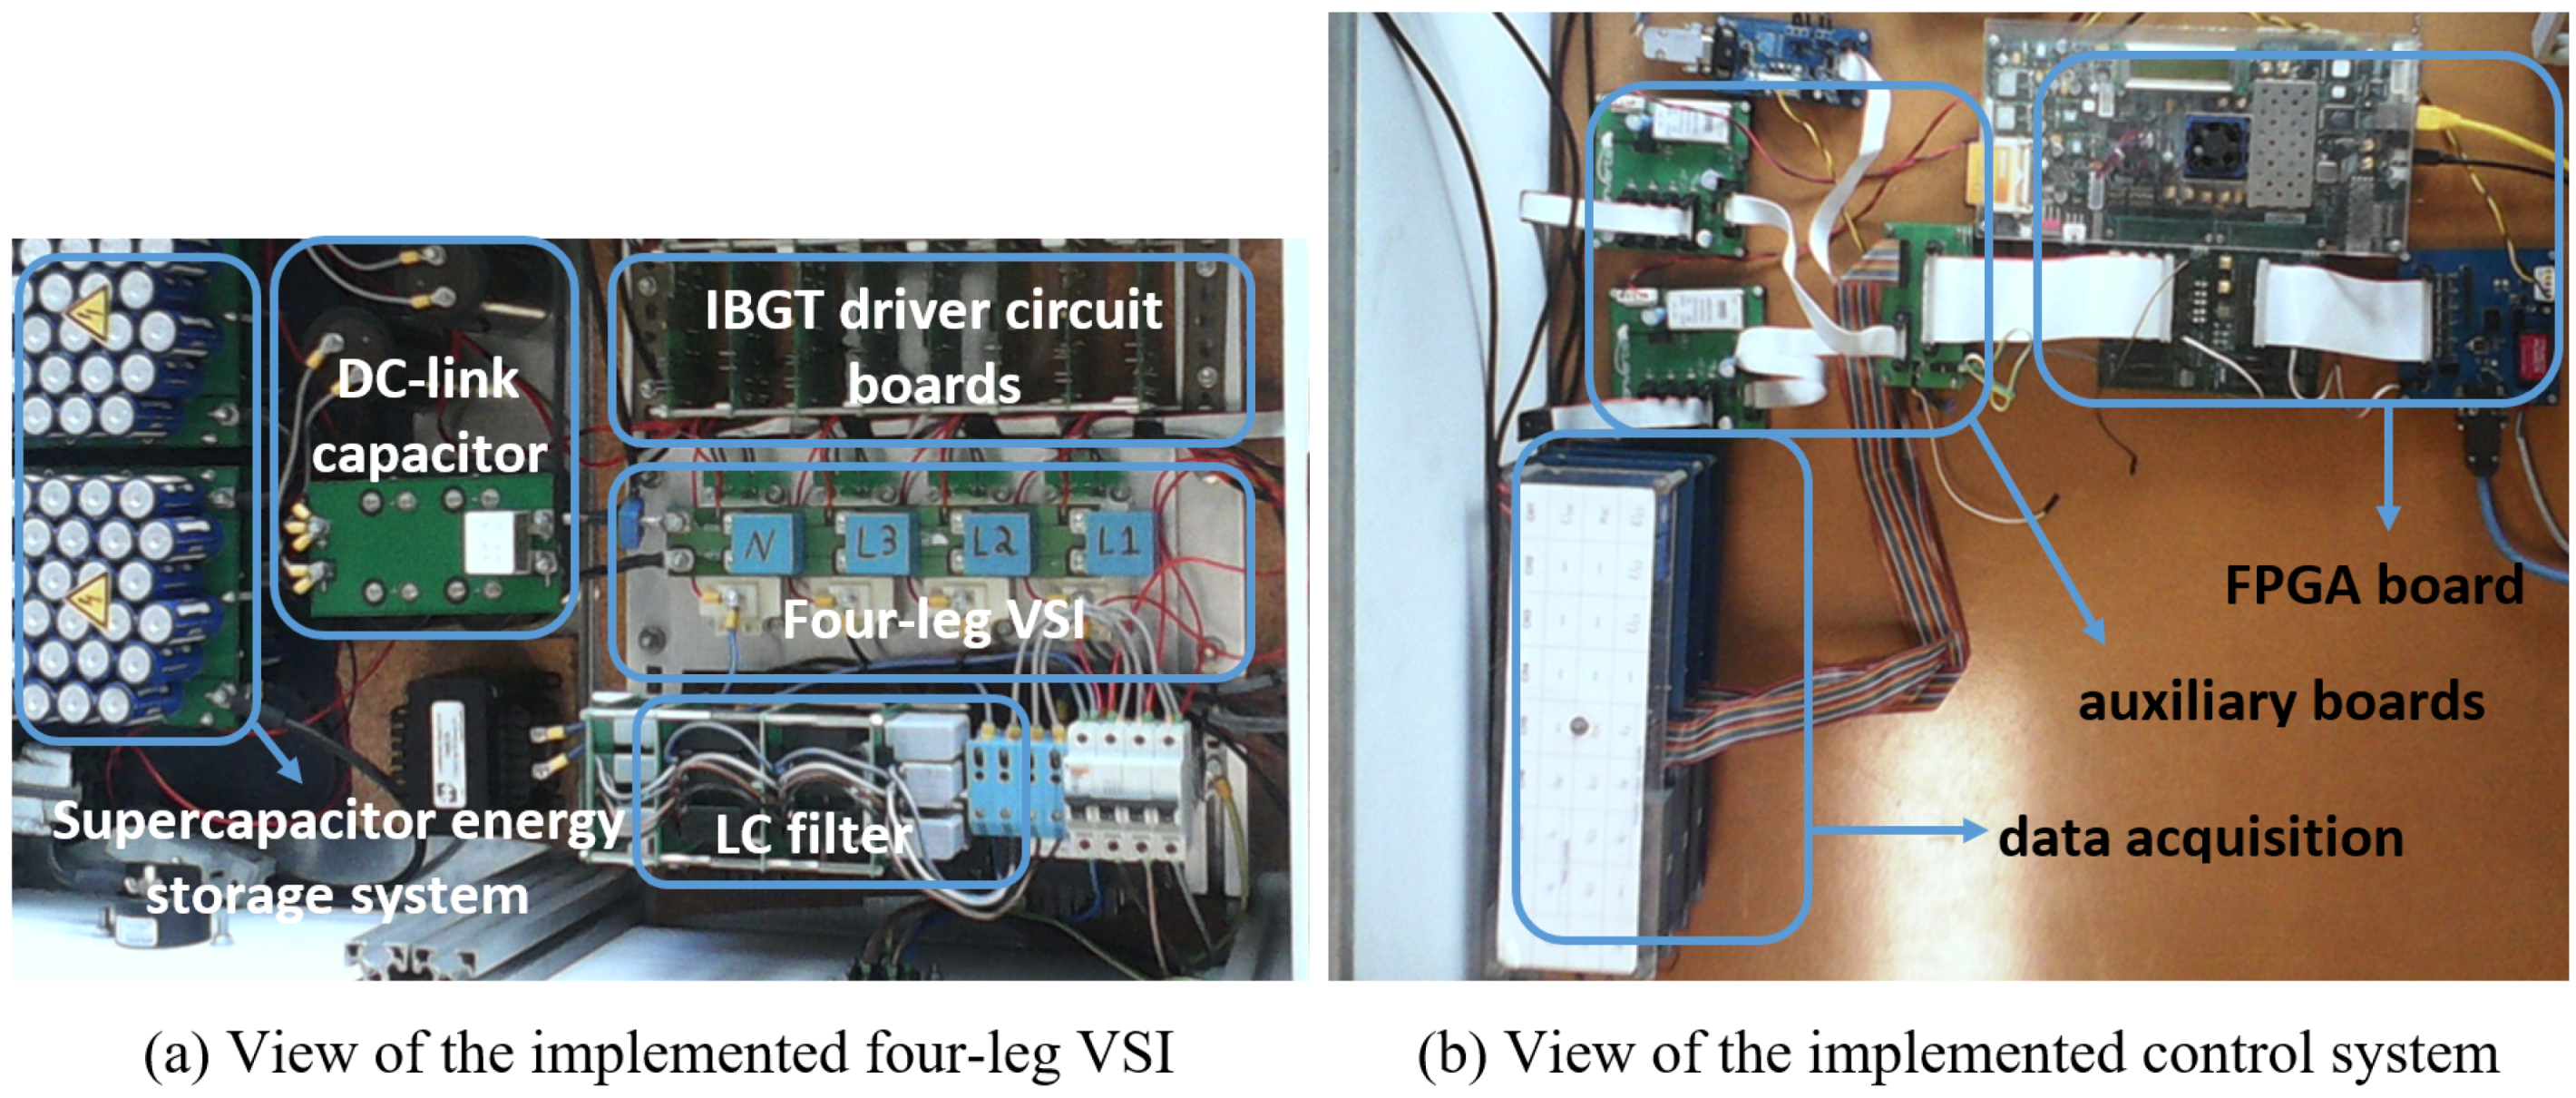 Iv Wiring And The Frequency Inverter Setting Energies Free Full Text Output Voltage Quality Evaluation Of No